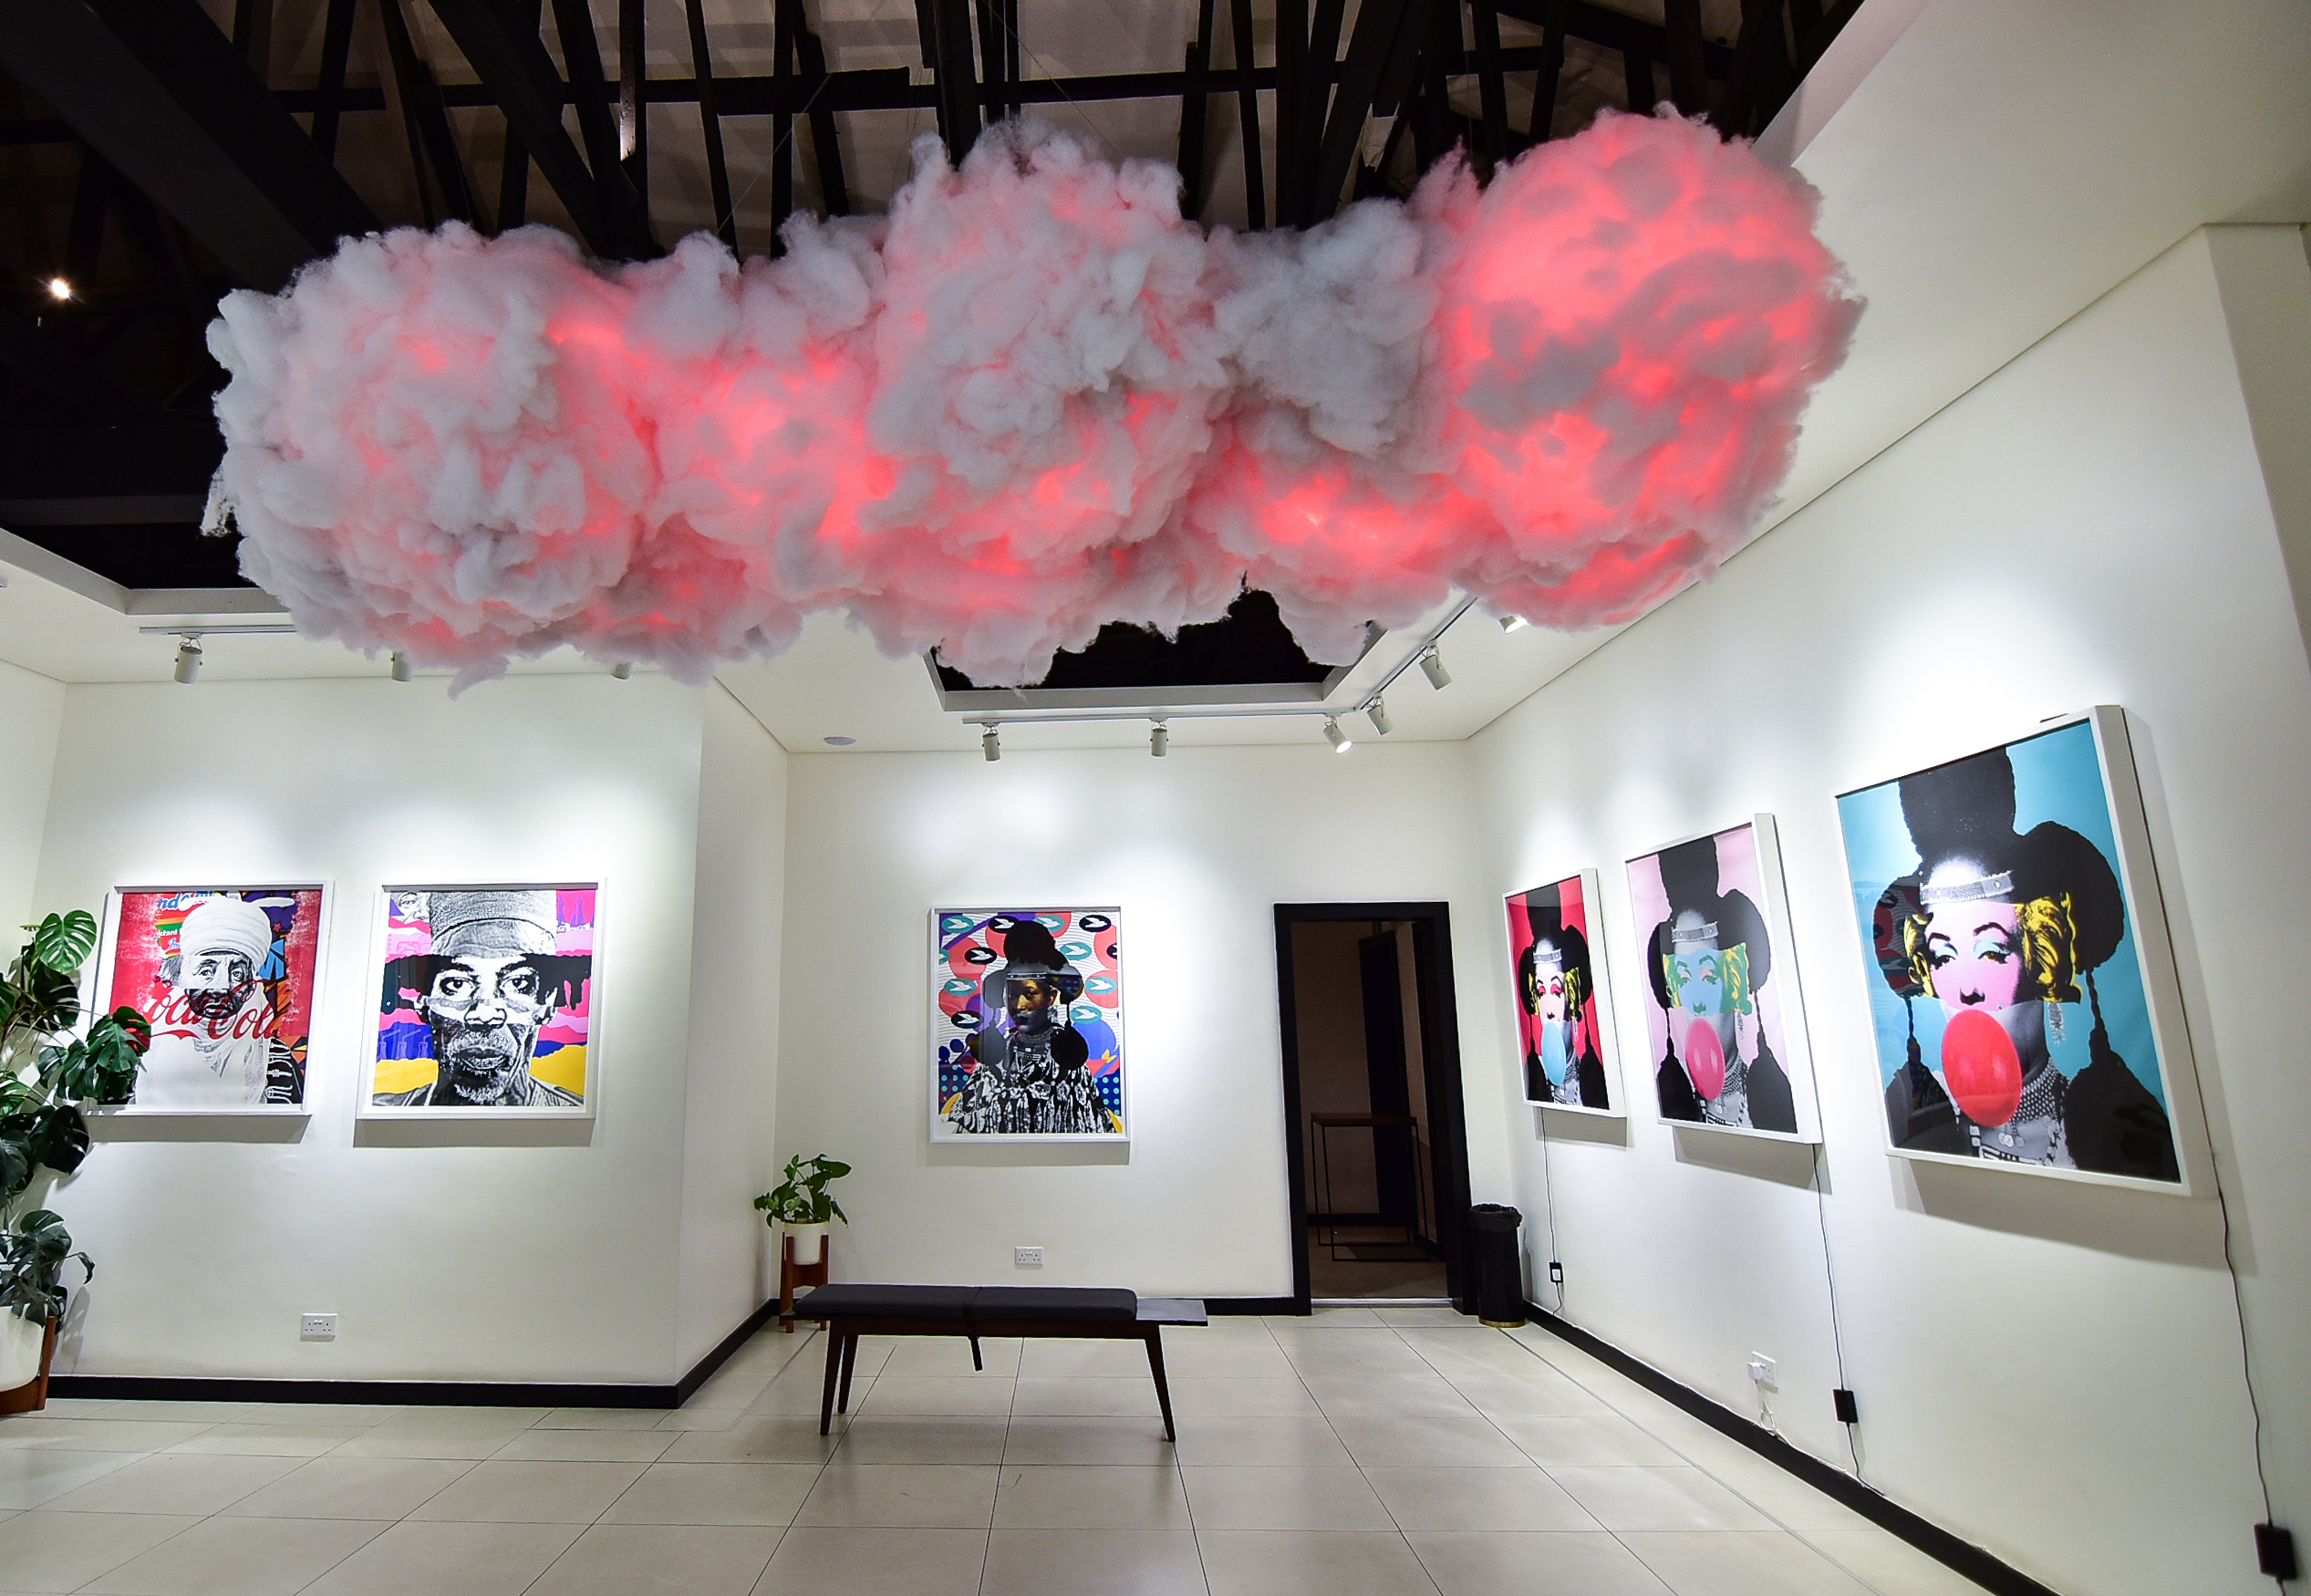 Installation view of Hyperflux exhibition by Williams Chechet. Courtesy of Retro Africa